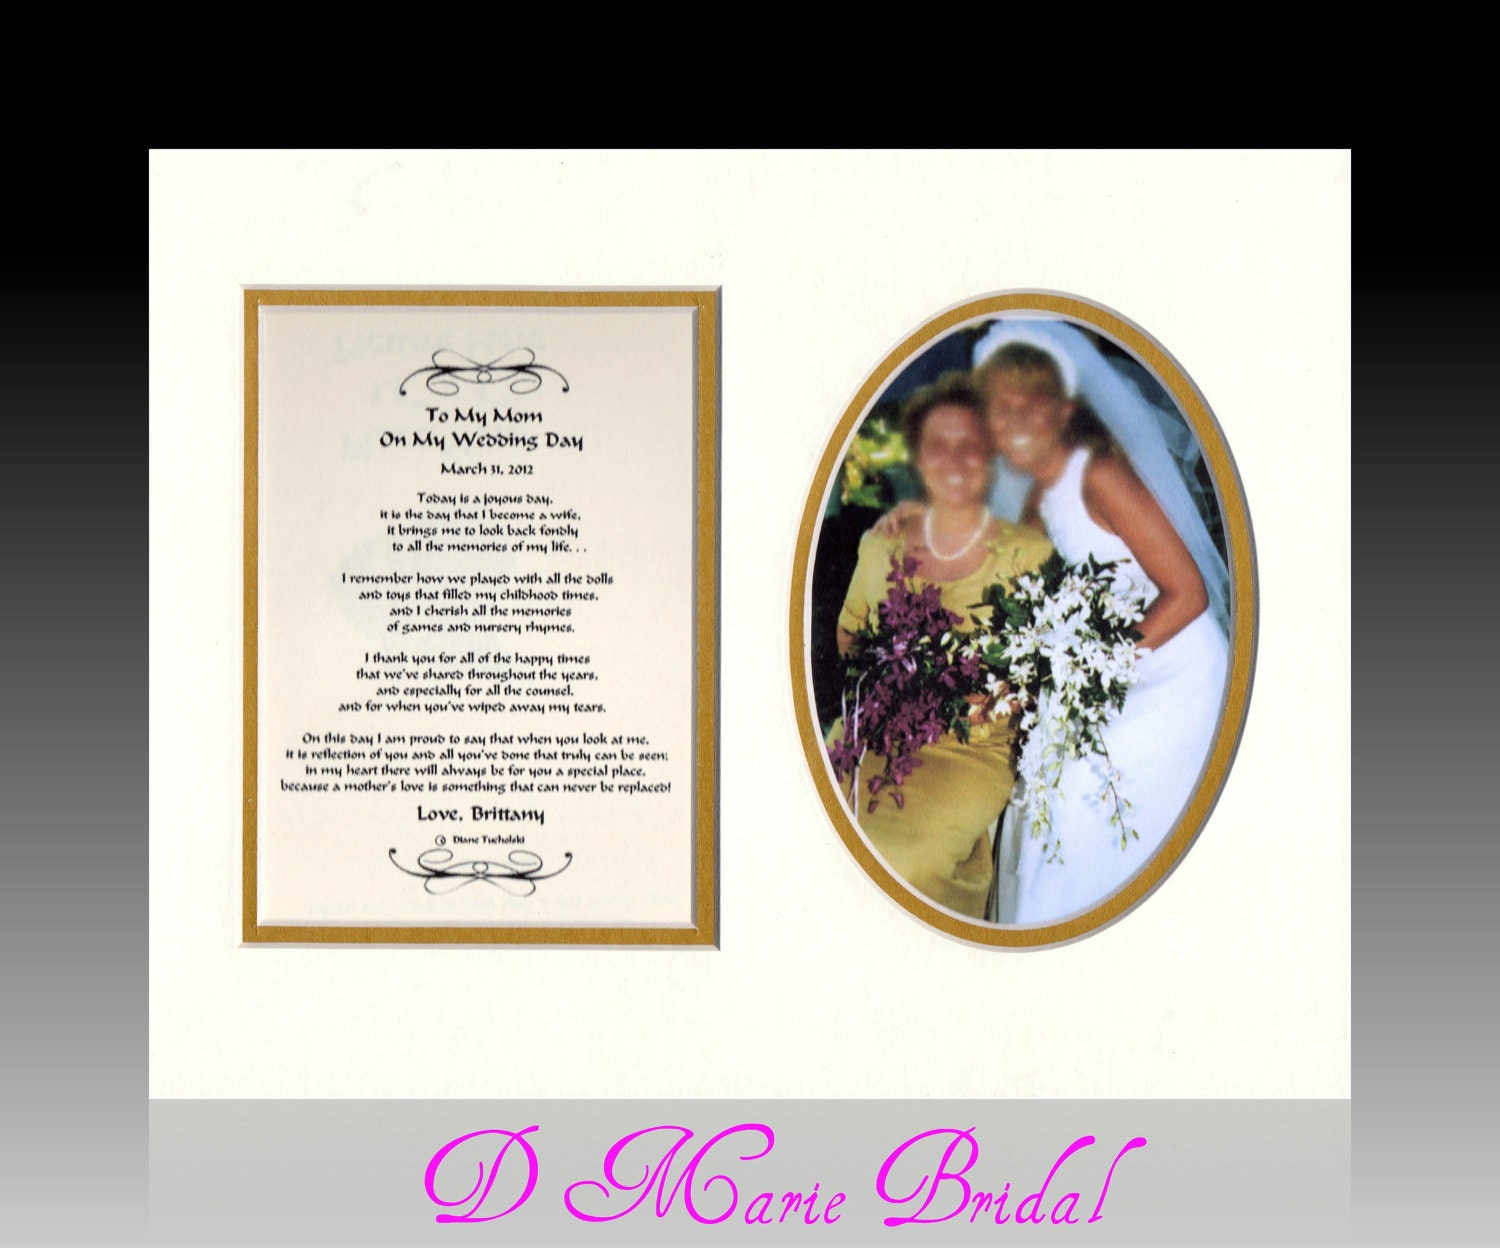 Personalised Wedding Gifts Mother Of The Bride : Mother of the Bride Personalized Wedding gift Thank you bride groom ...